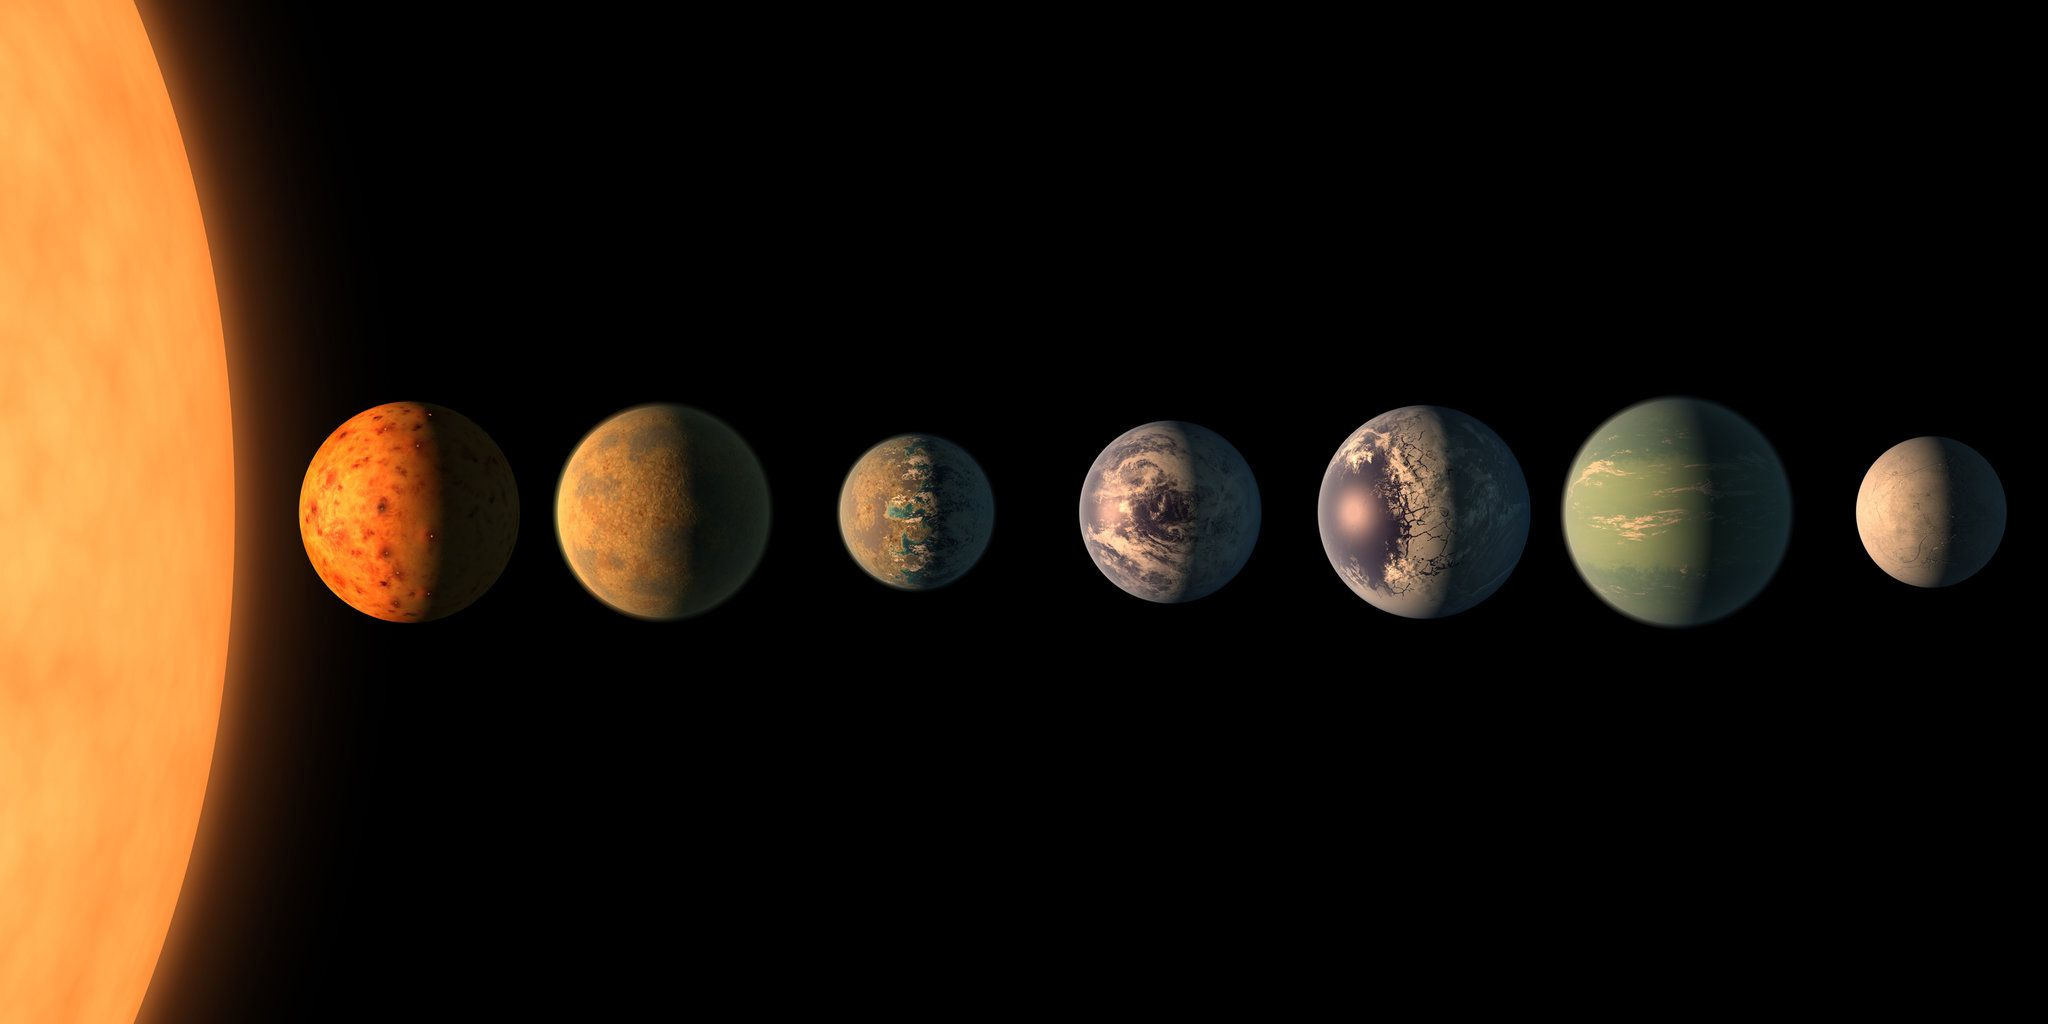 Astronomers are excited by the discovery, which suggests that some of these exoplanets — planets around stars other than the sun — could support life and may be awash in oceans.